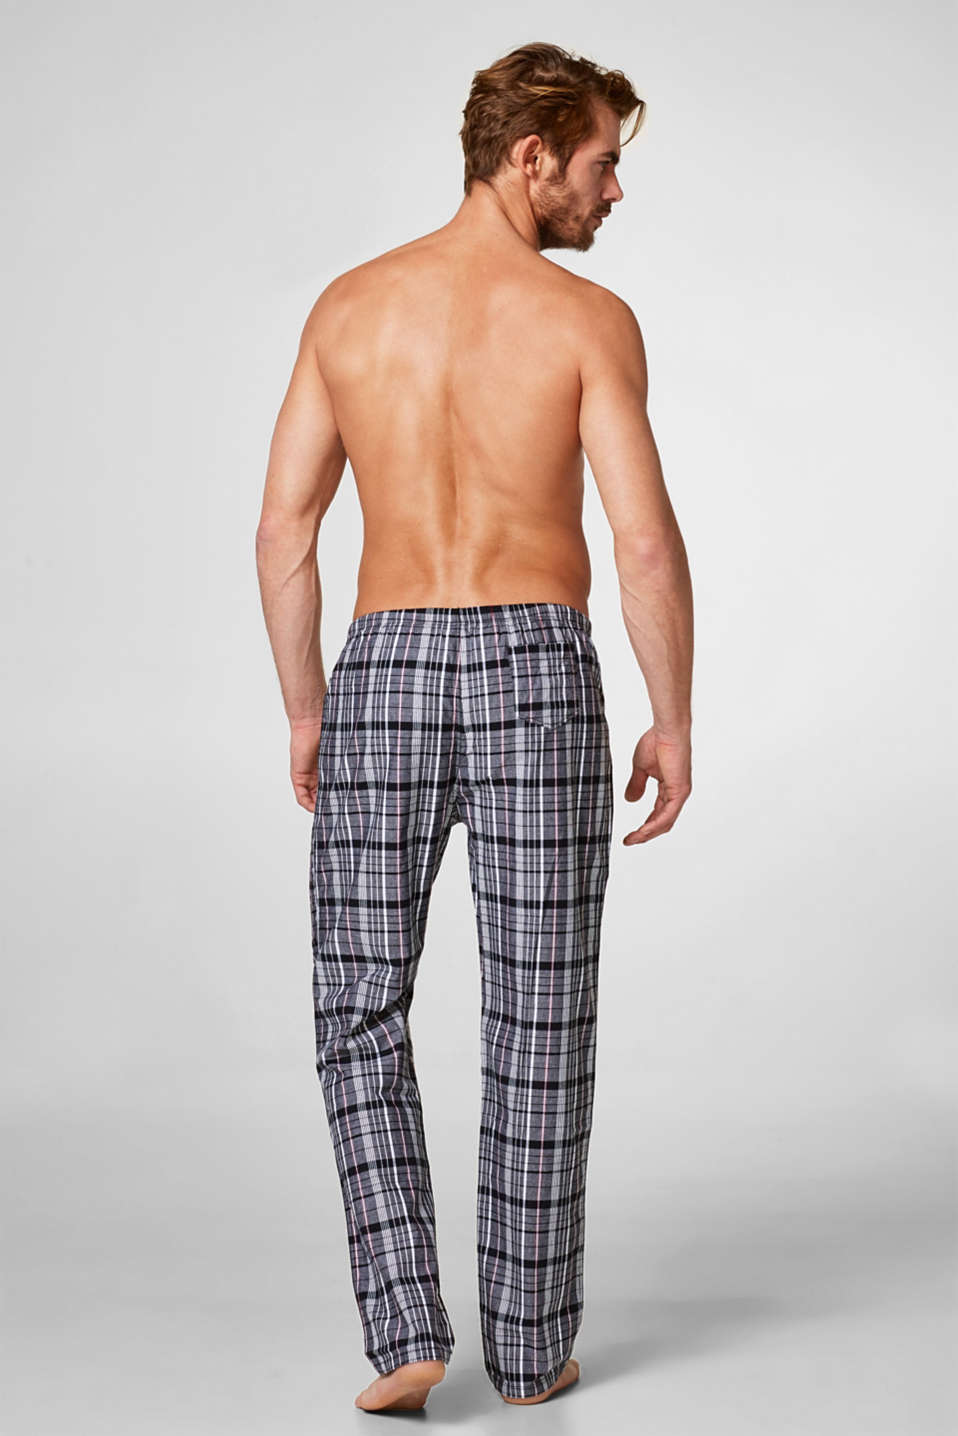 Woven check pyjama bottoms, 100% cotton